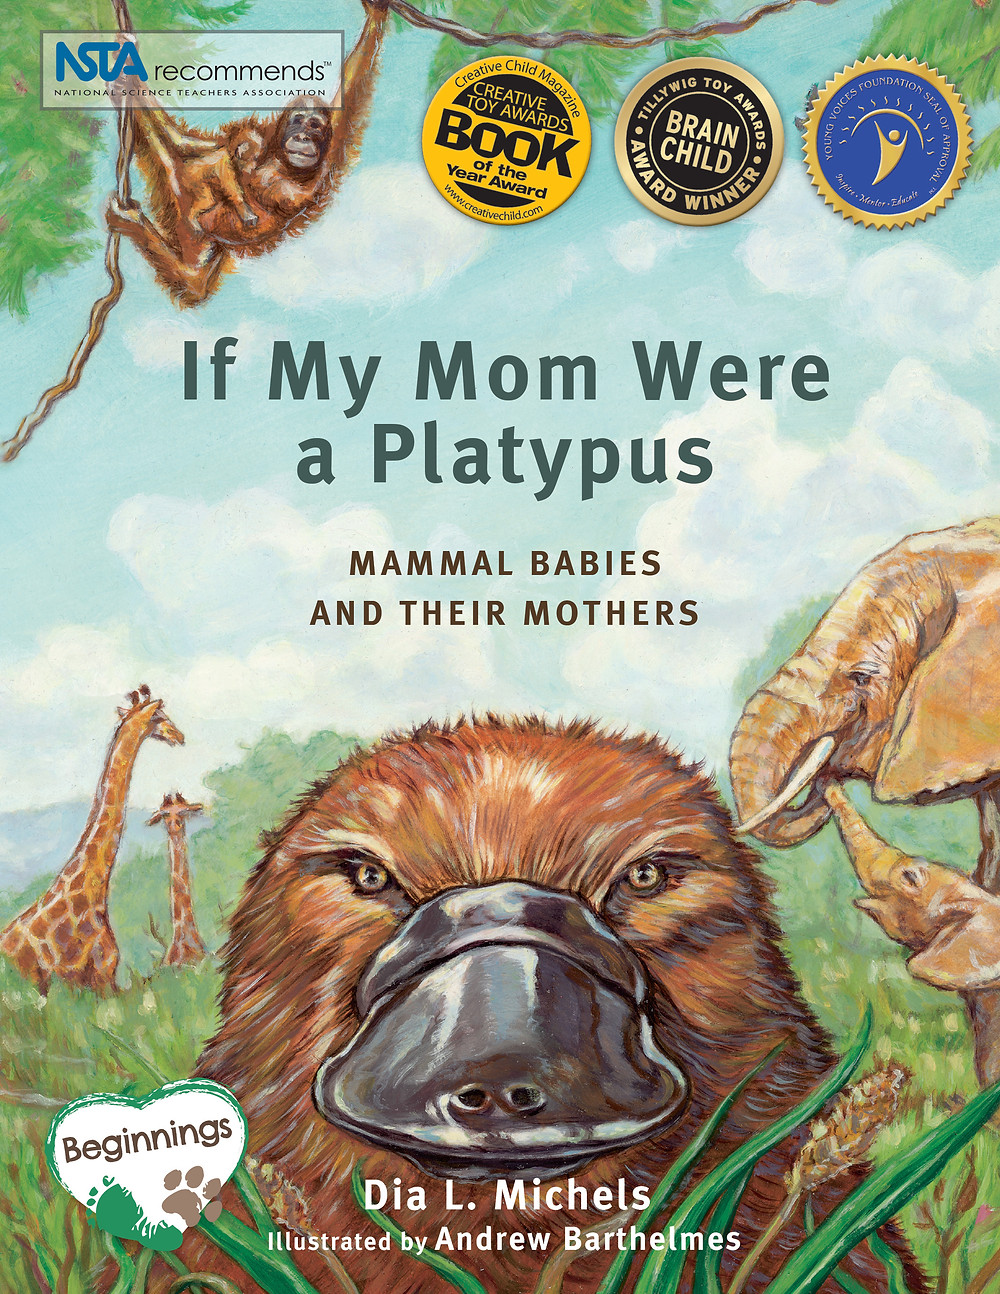 if my mom were a platypus Halloween activities STEM science mystery mysteries activity young children early education